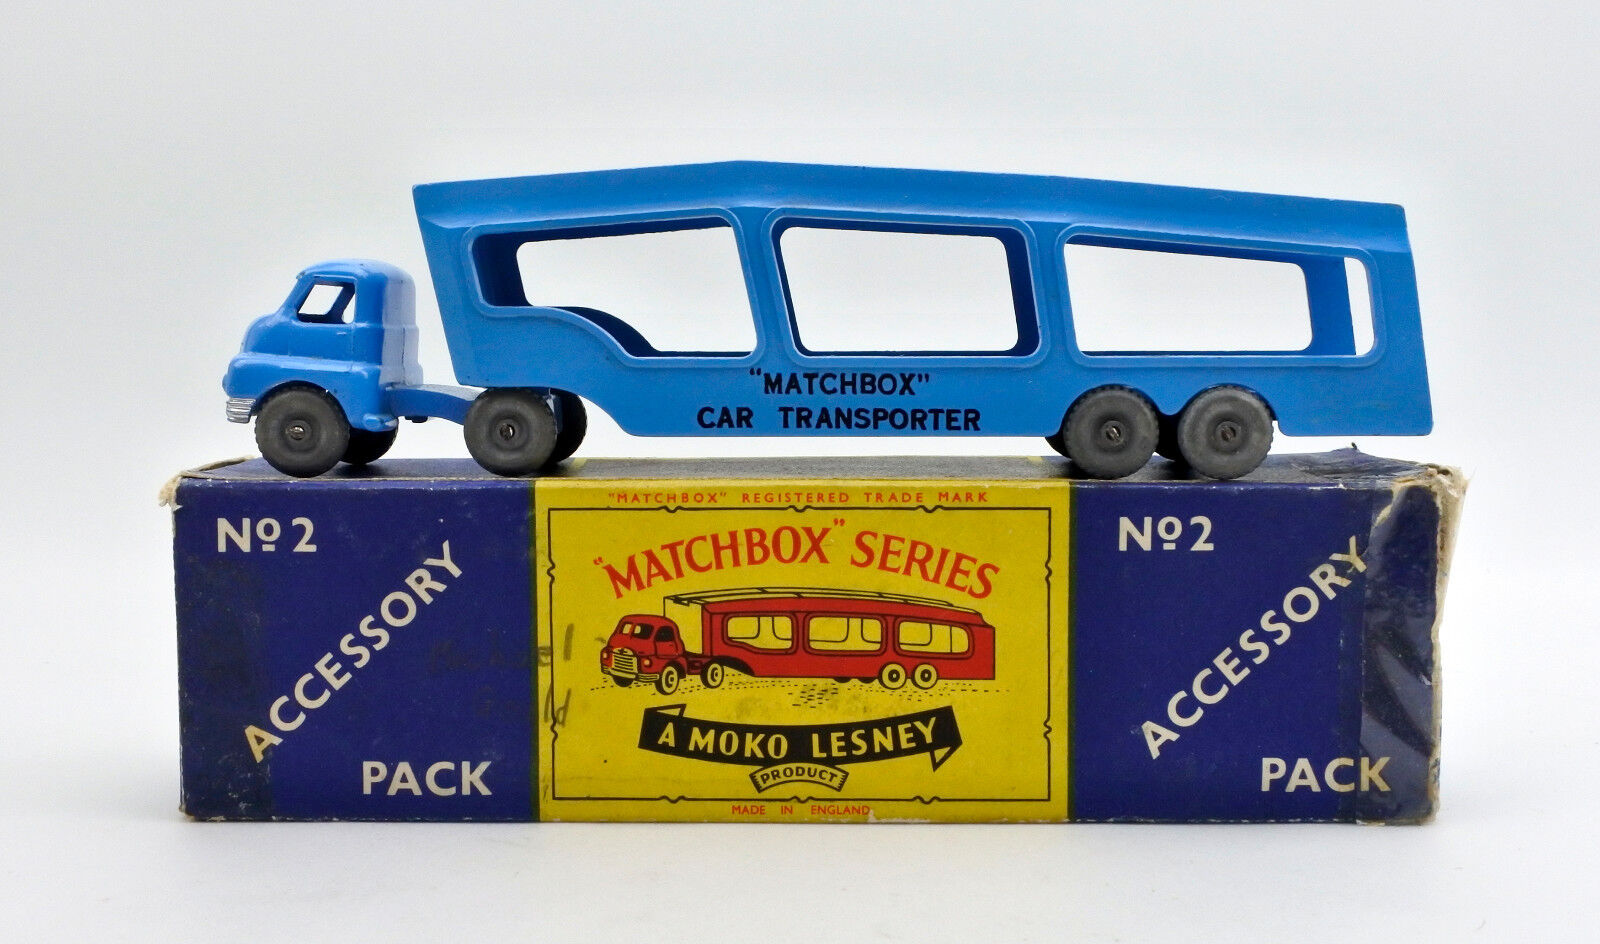 MATCHBOX A2 DIECAST MATCHBOX CAR TRANSPORTER